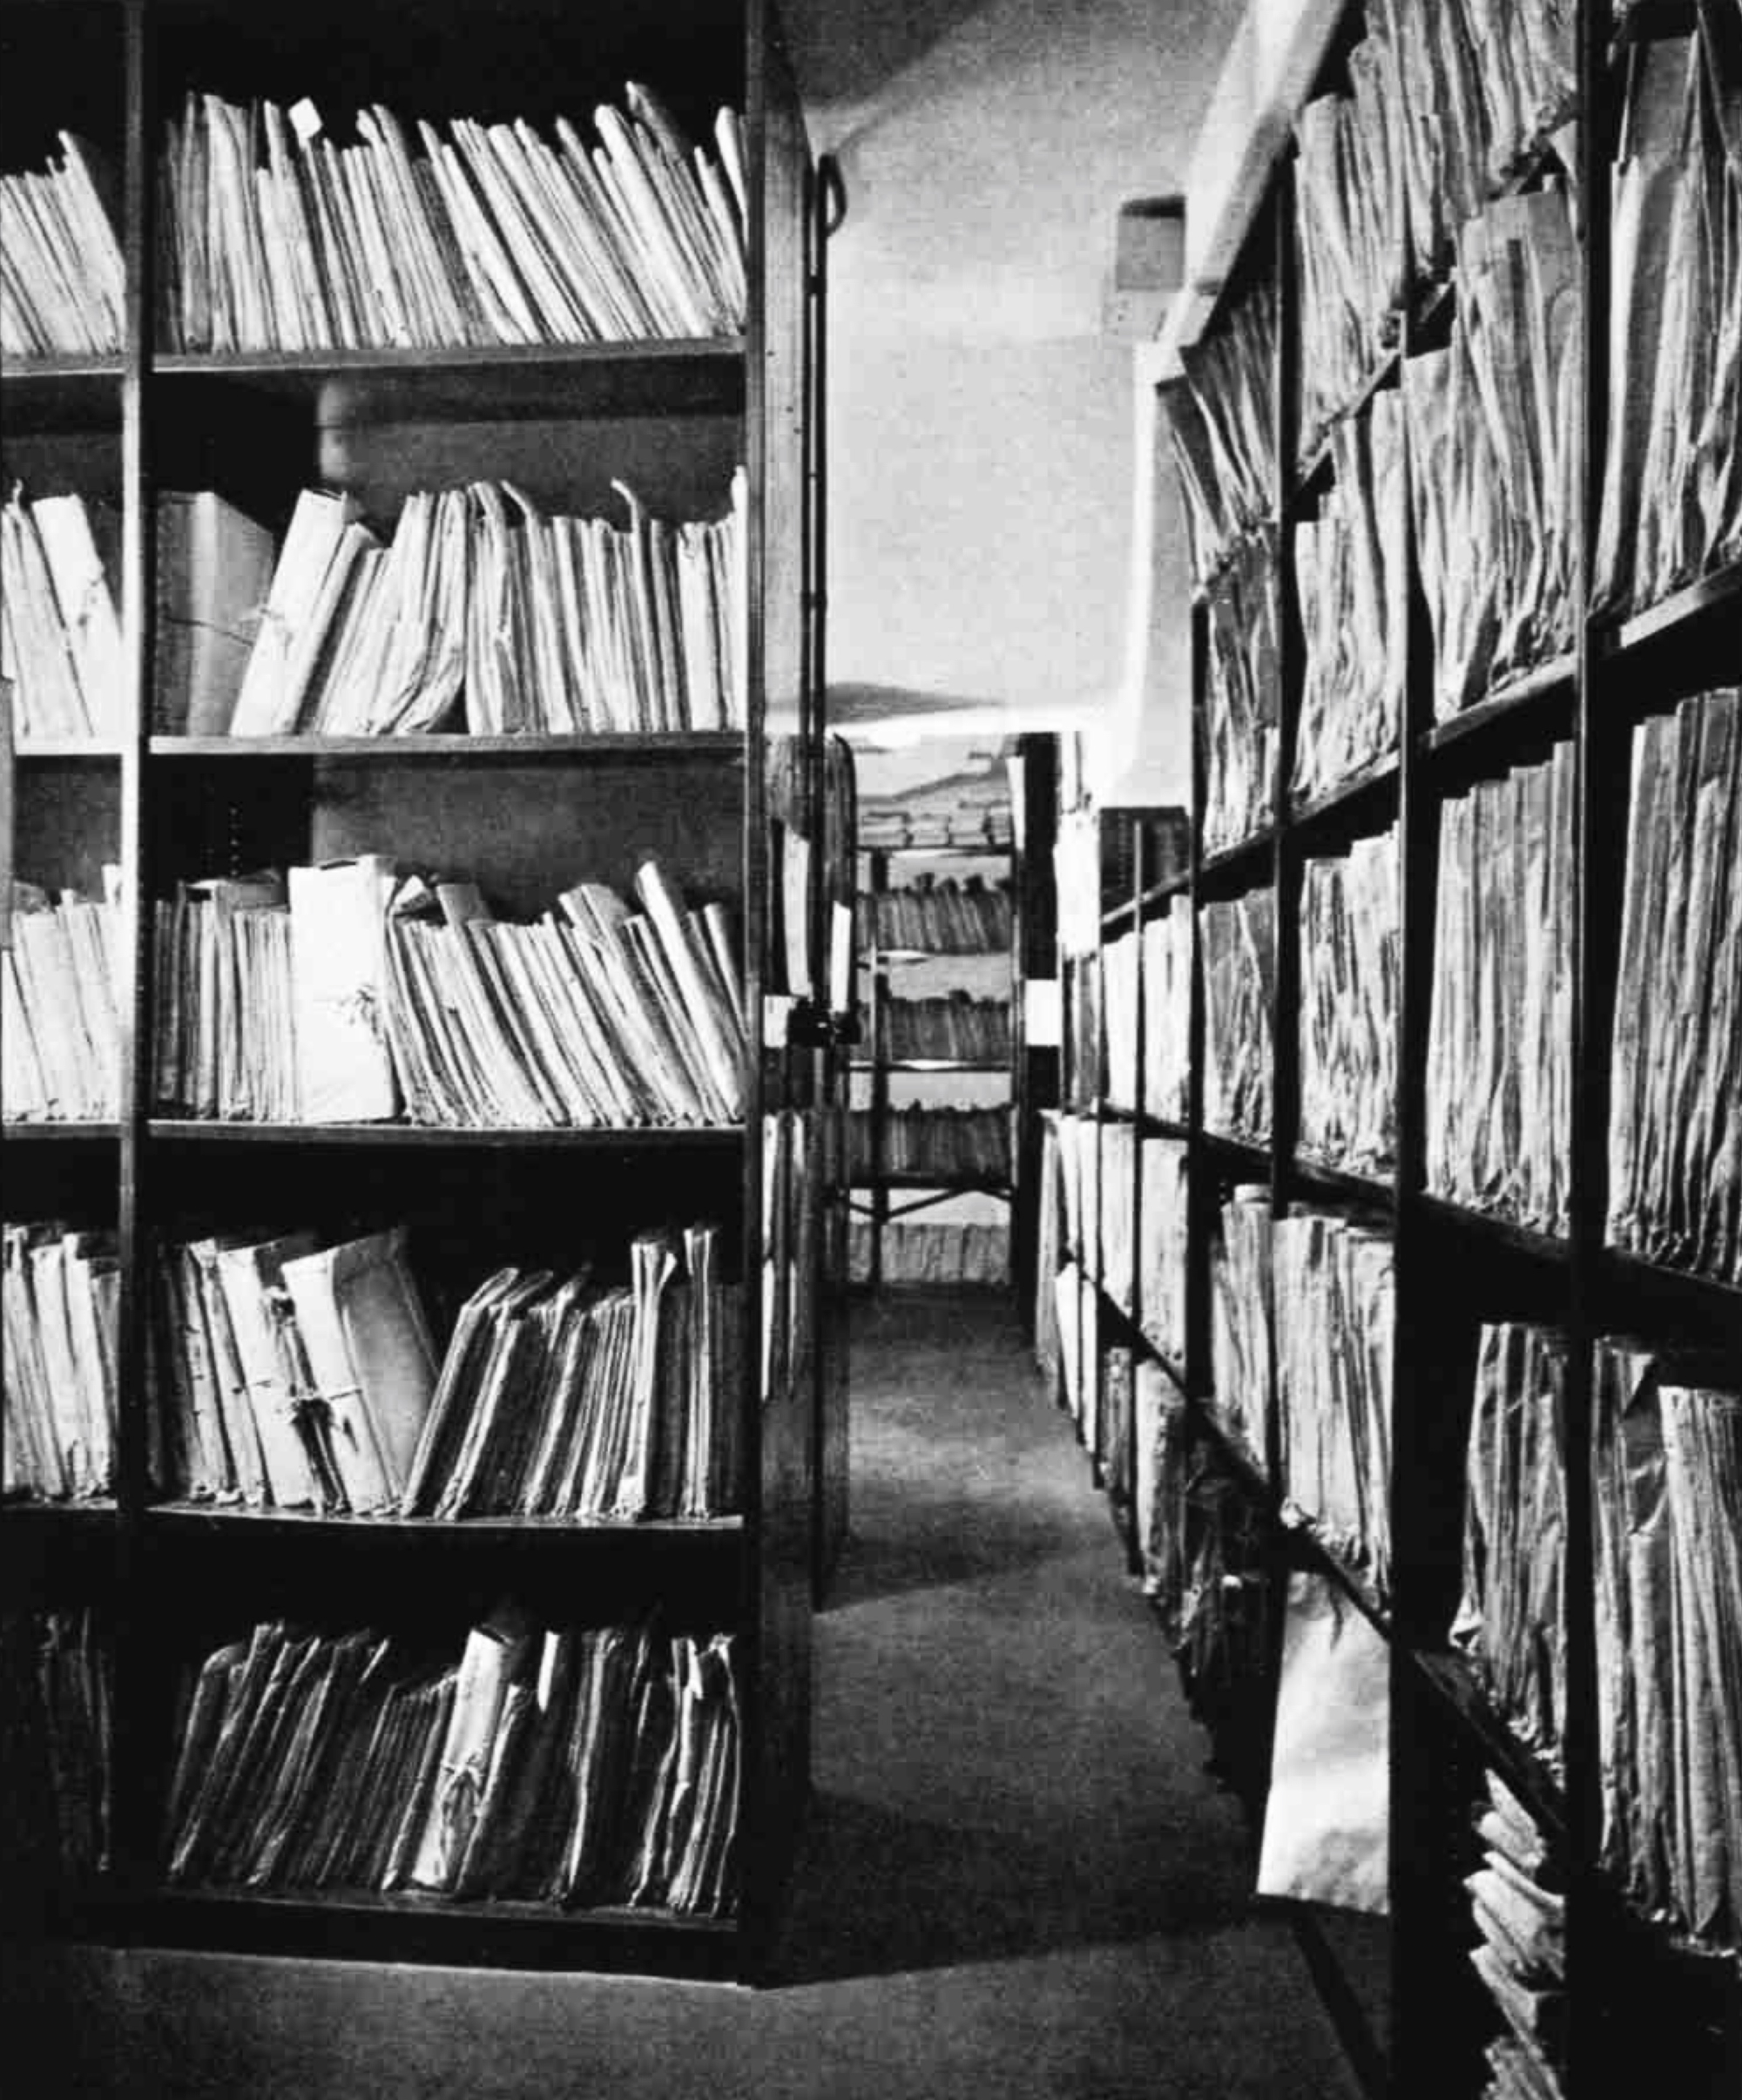 Shelves filled with gramophone records and sheet music